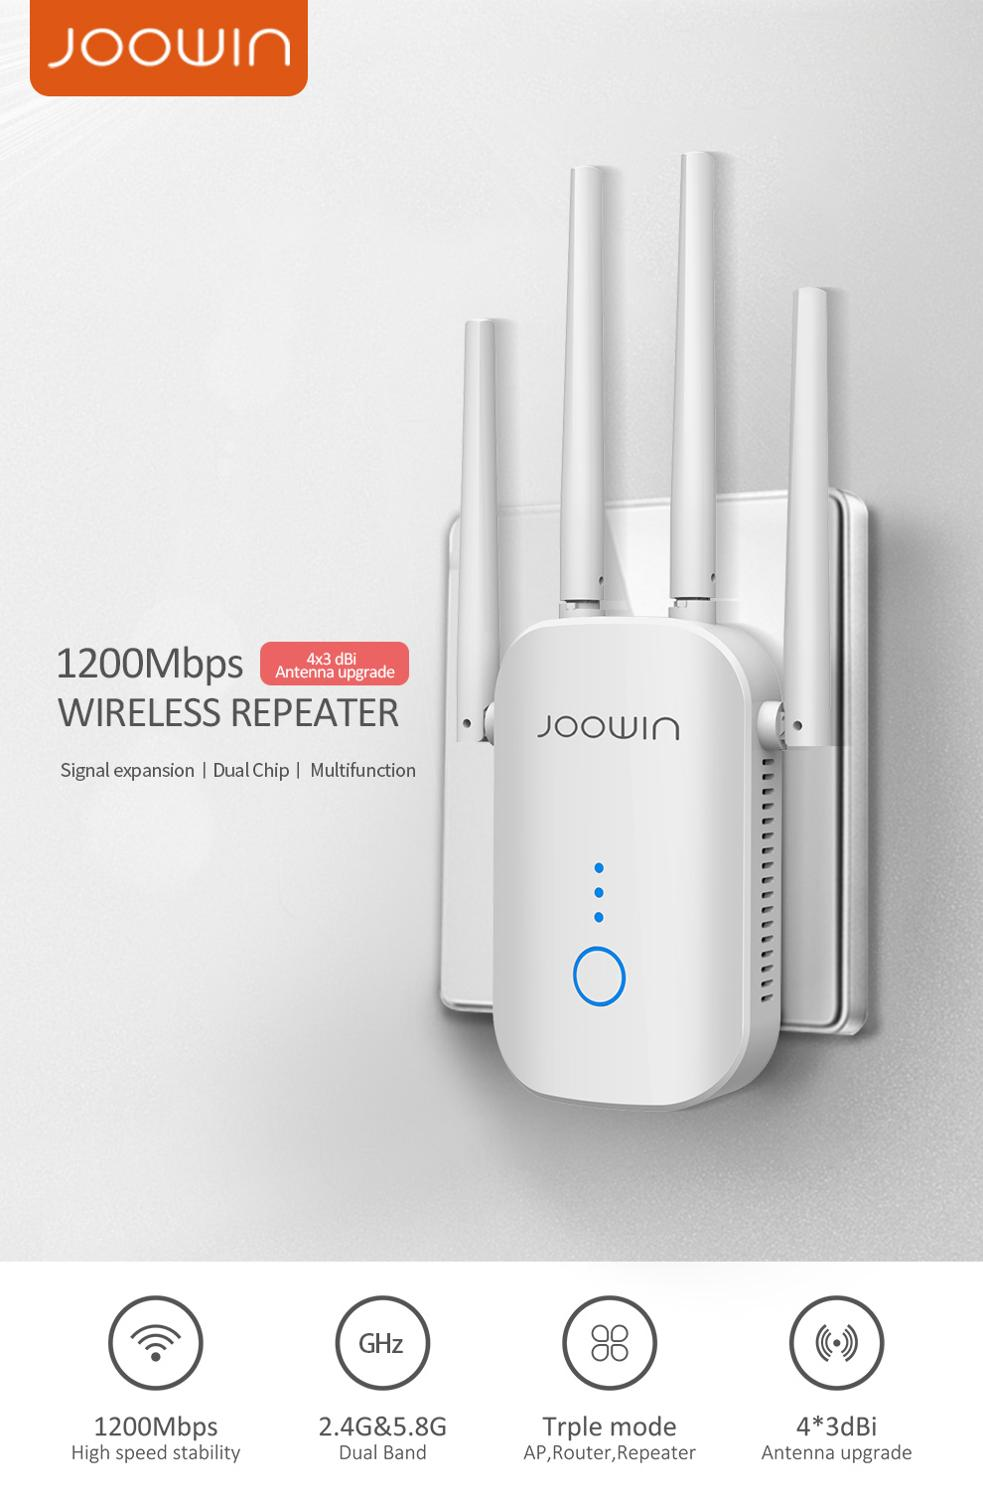 Joowin JW-WR758AC 1200Mbps High Speed Wifi Repeater 2.4G&5.8G Dual Band Wireless Extender Use 4*3 dBi Antennas Long Signal